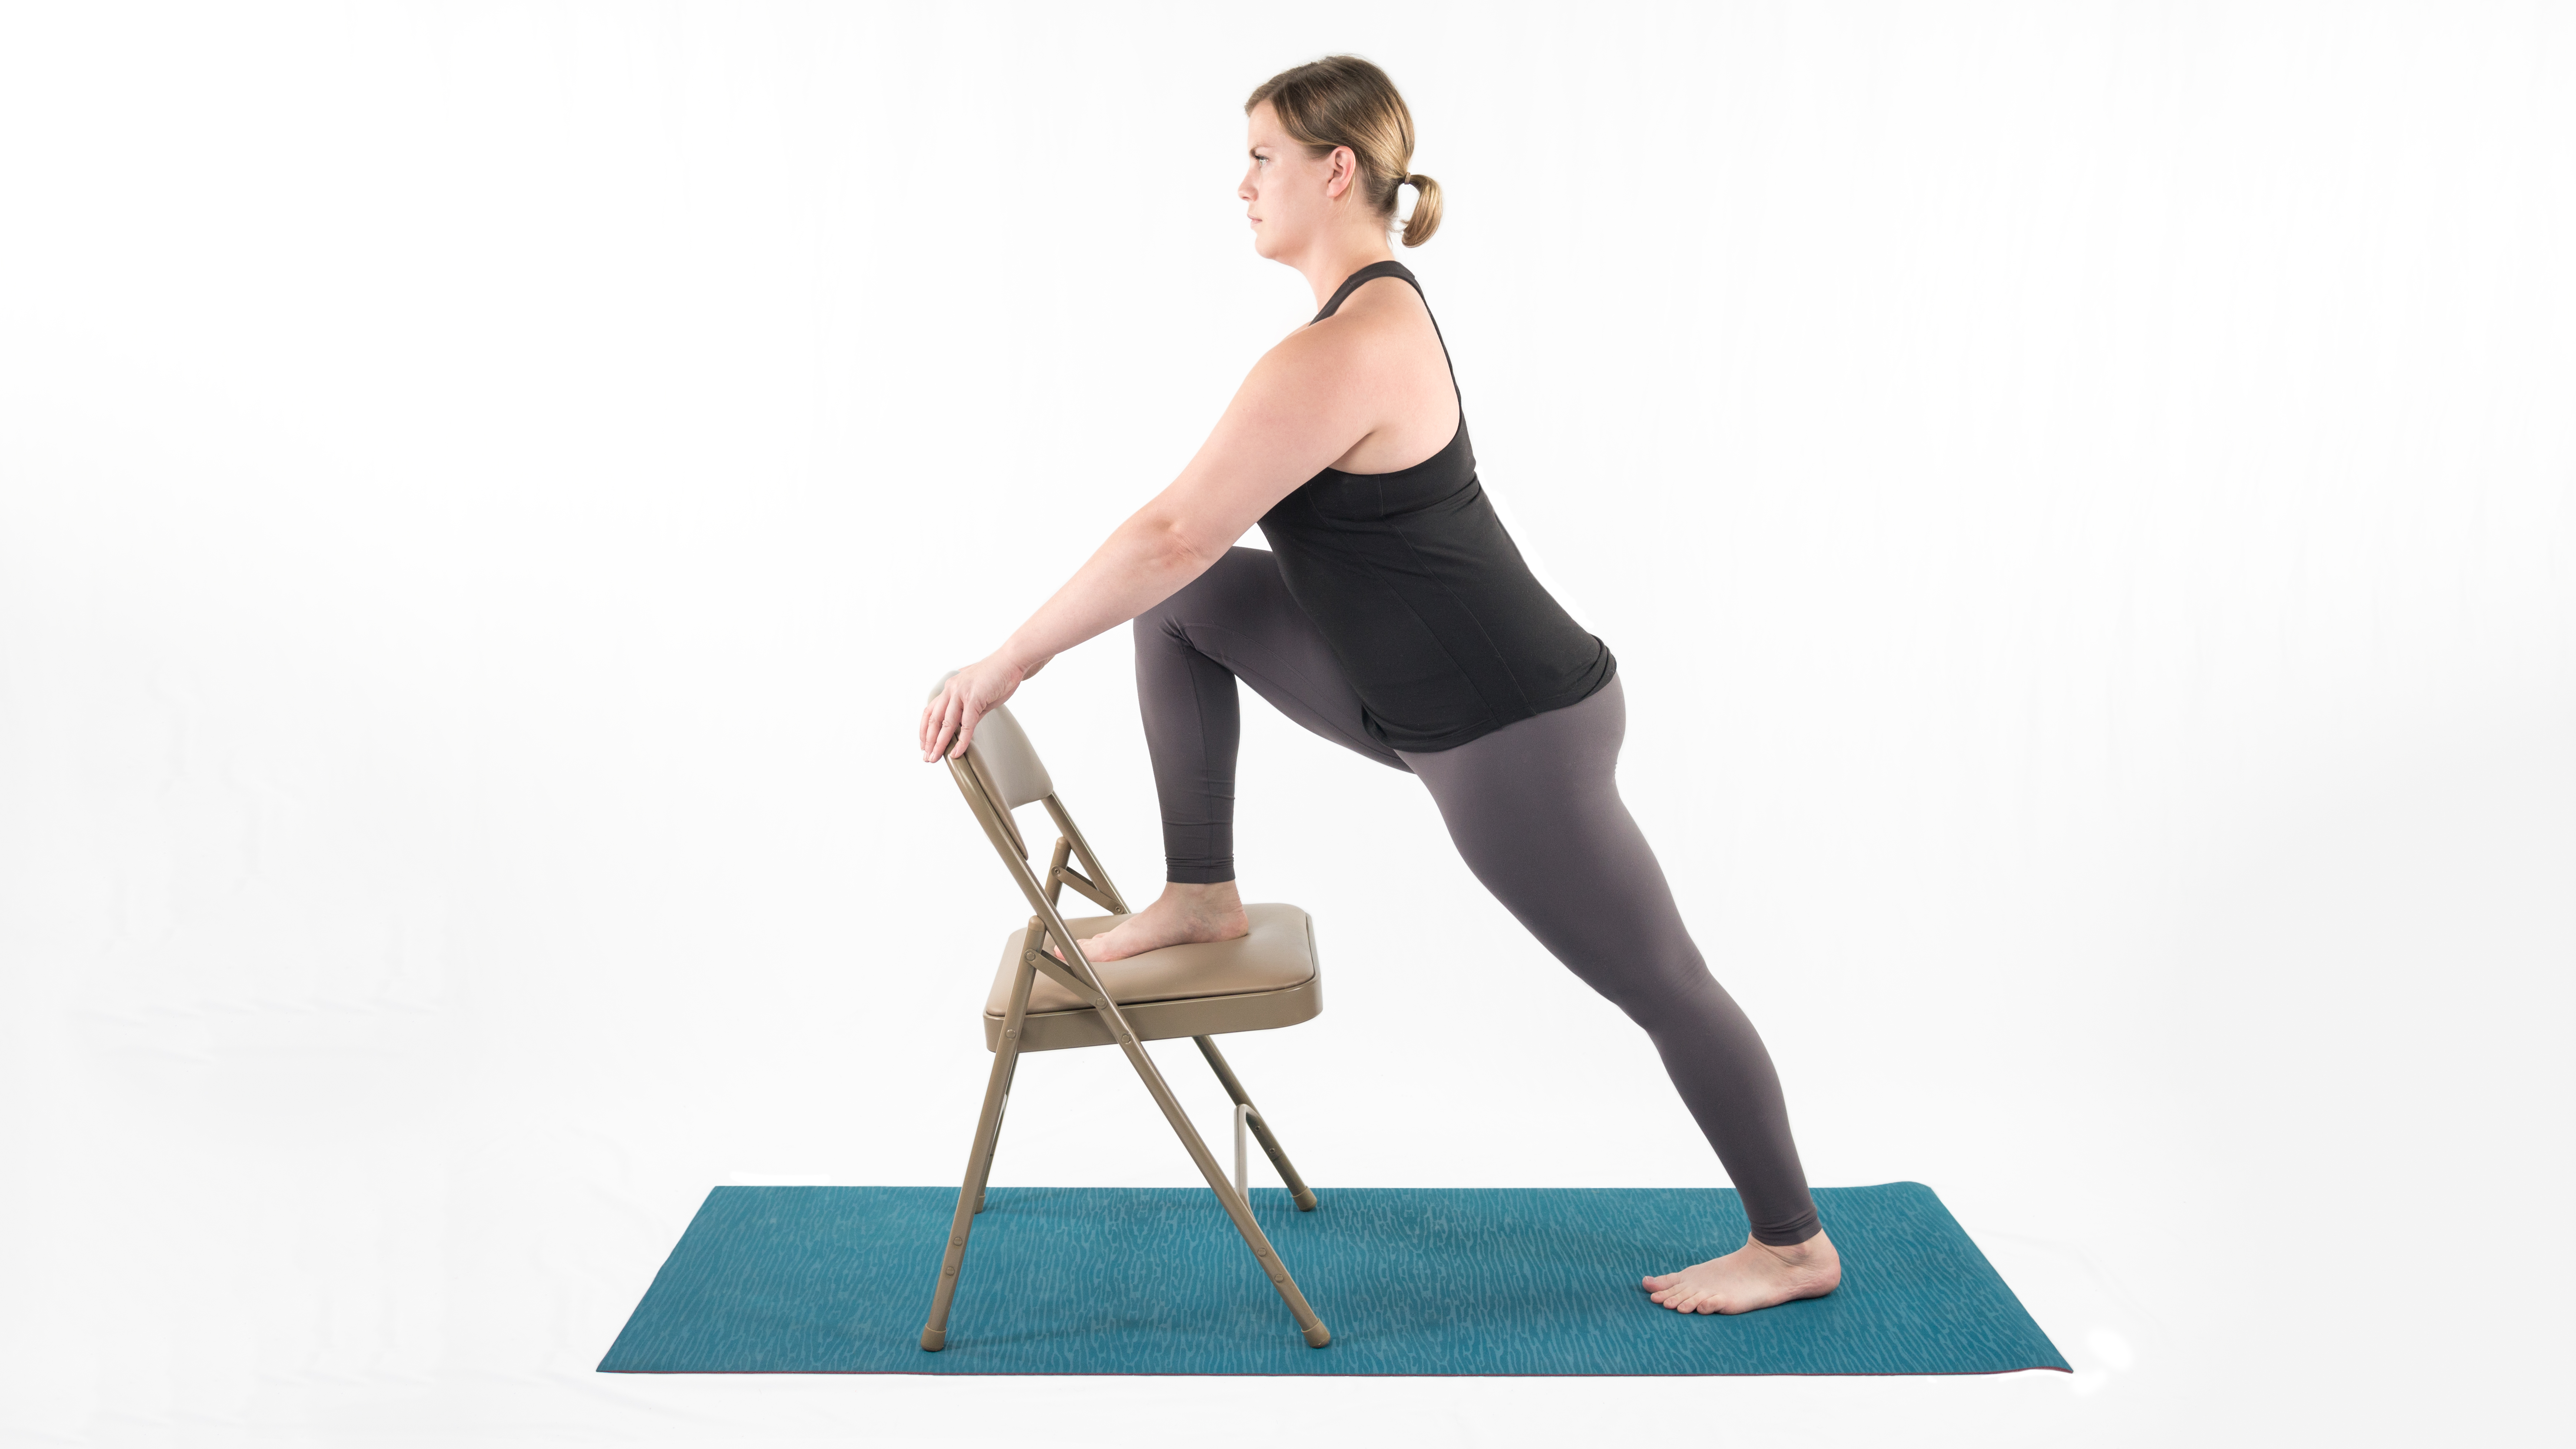 A woman in Lunge with Chair, which stretches the leg muscles in preparation for Warrior 2 yoga pose